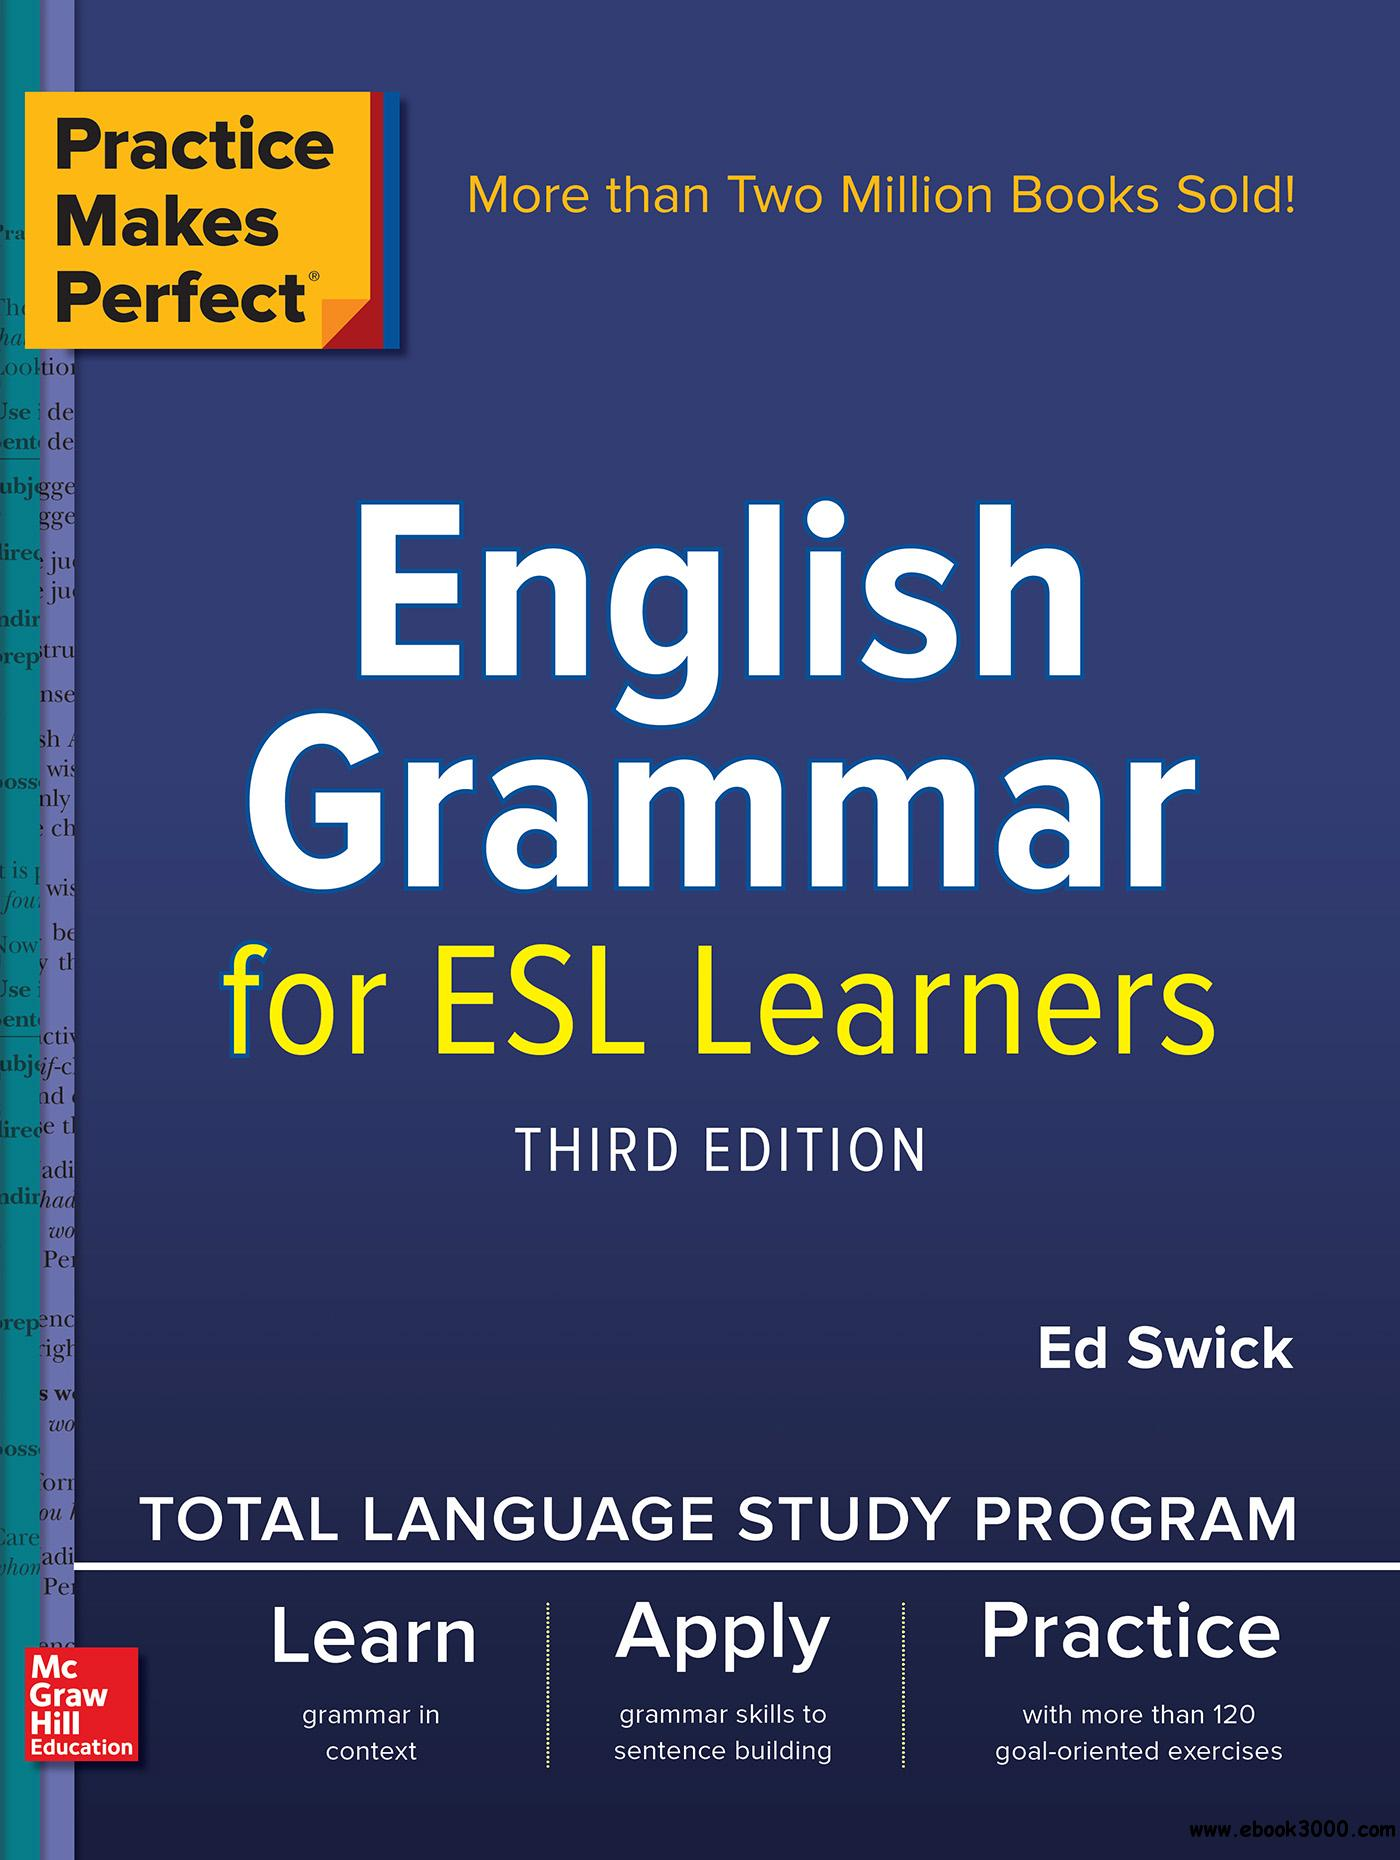 Practice Makes Perfect: English Grammar for ESL Learners, 3rd Edition